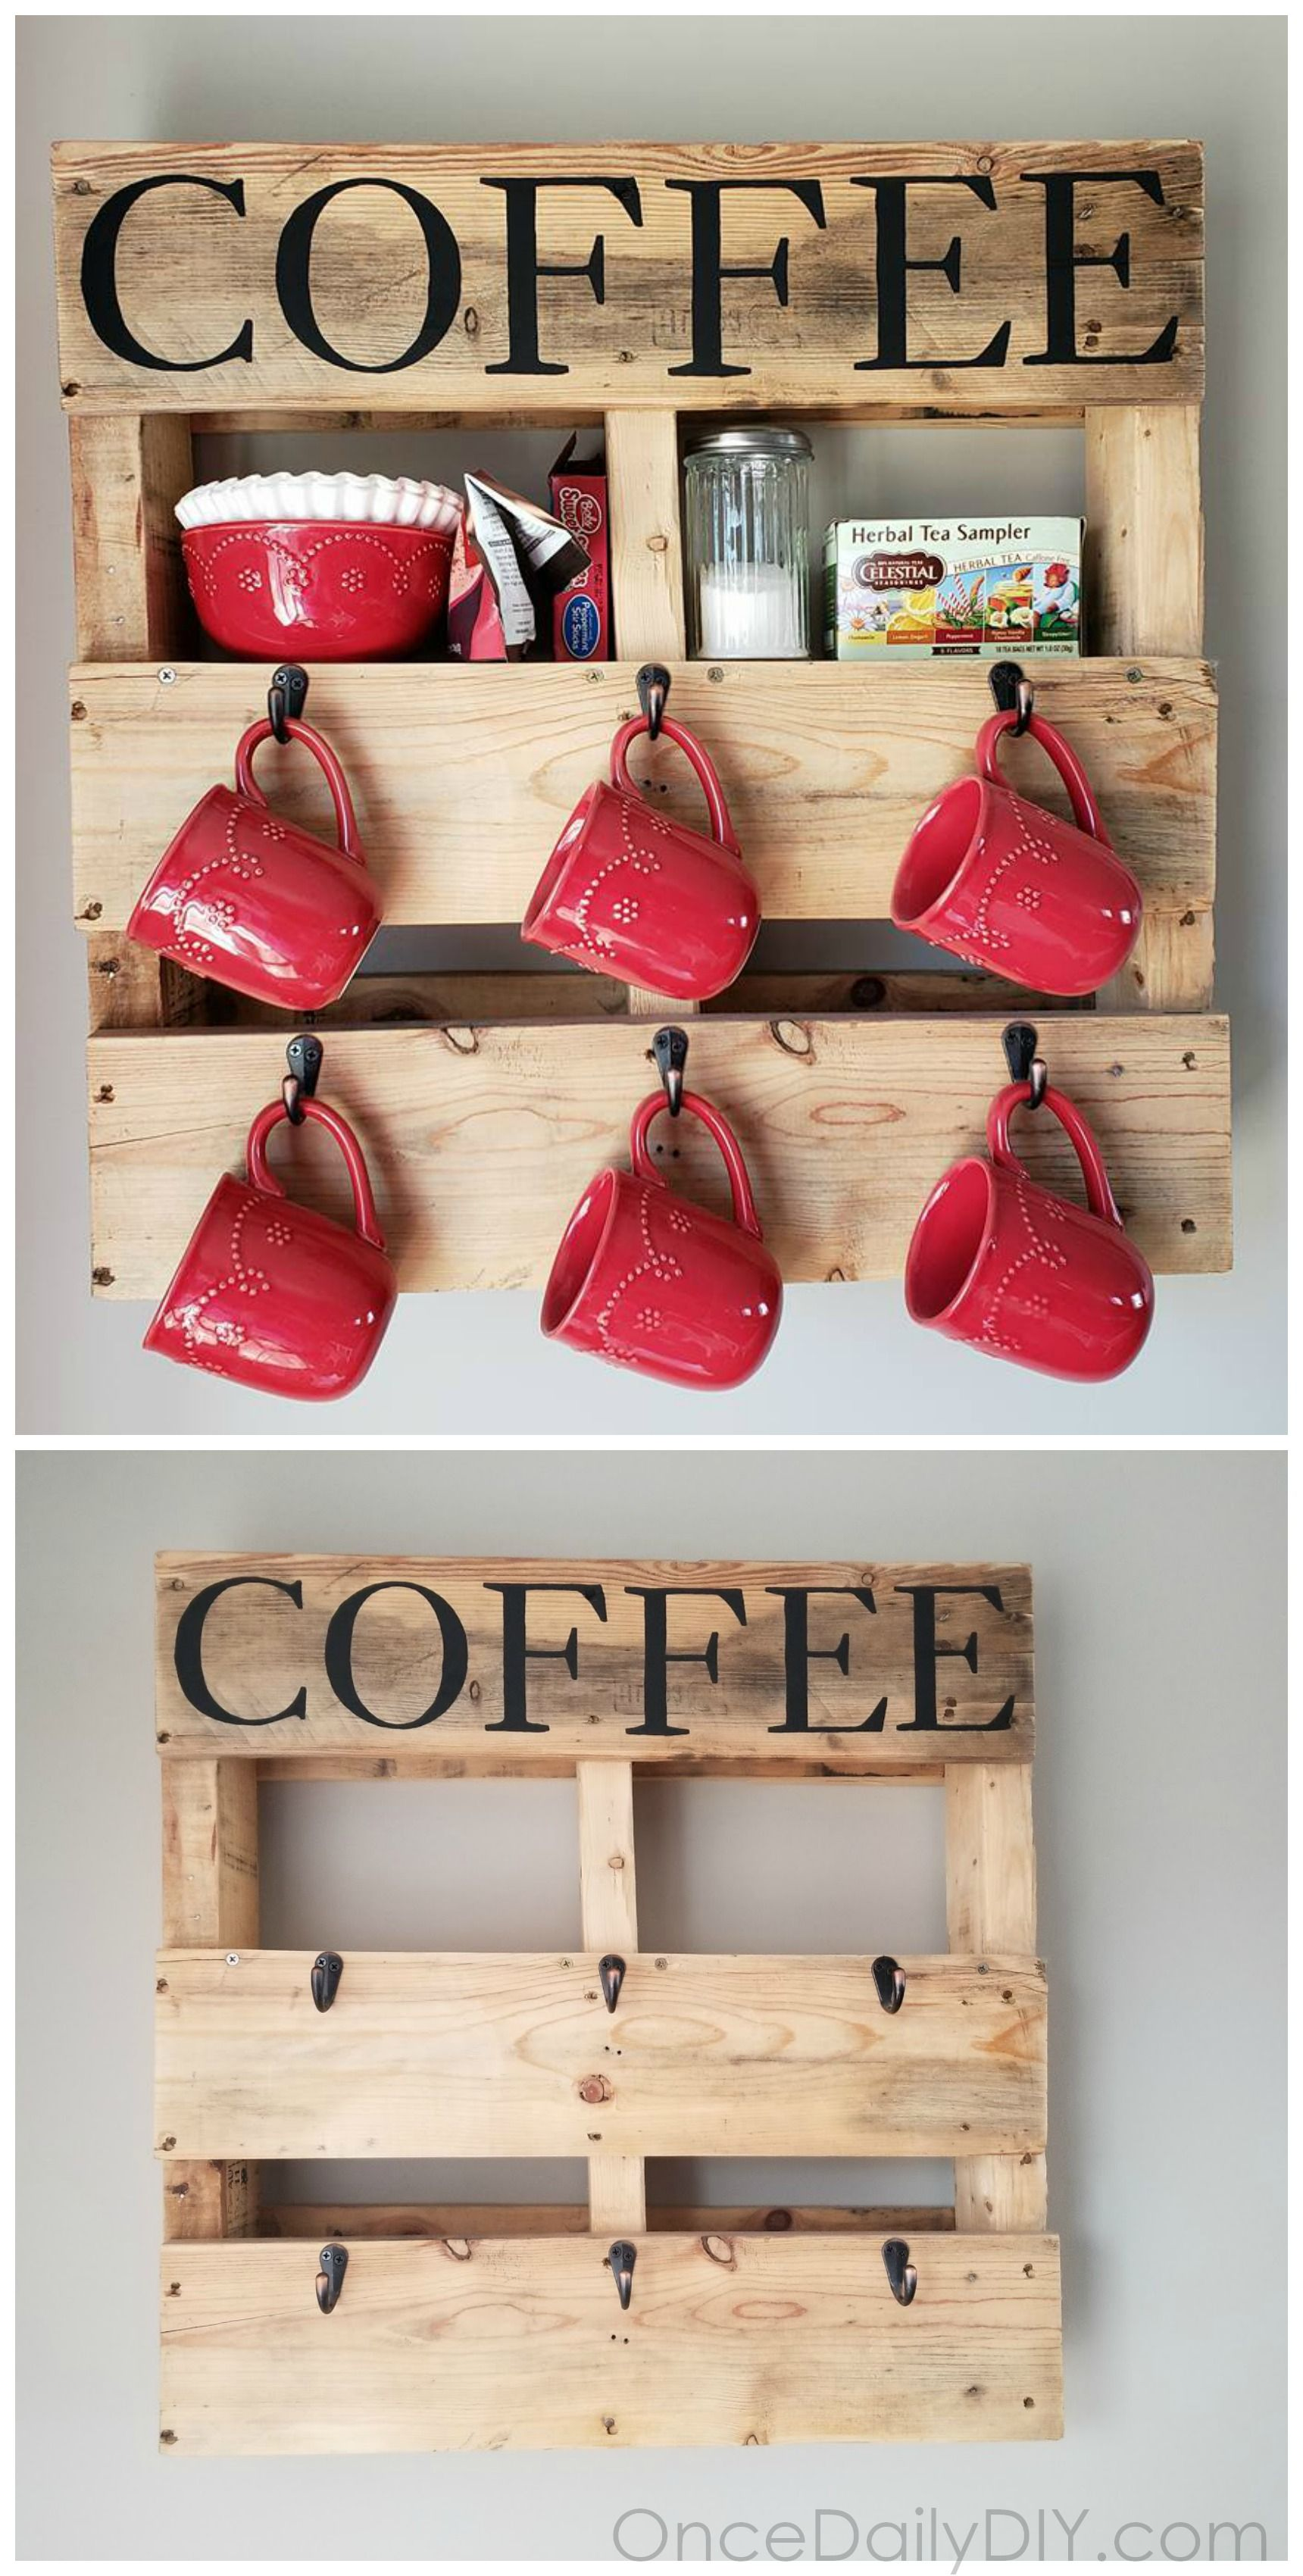 Diy Wood Pallet Coffee Cup Holder Diy Paletten Diy Palettenmobel Holzprojekte Diy